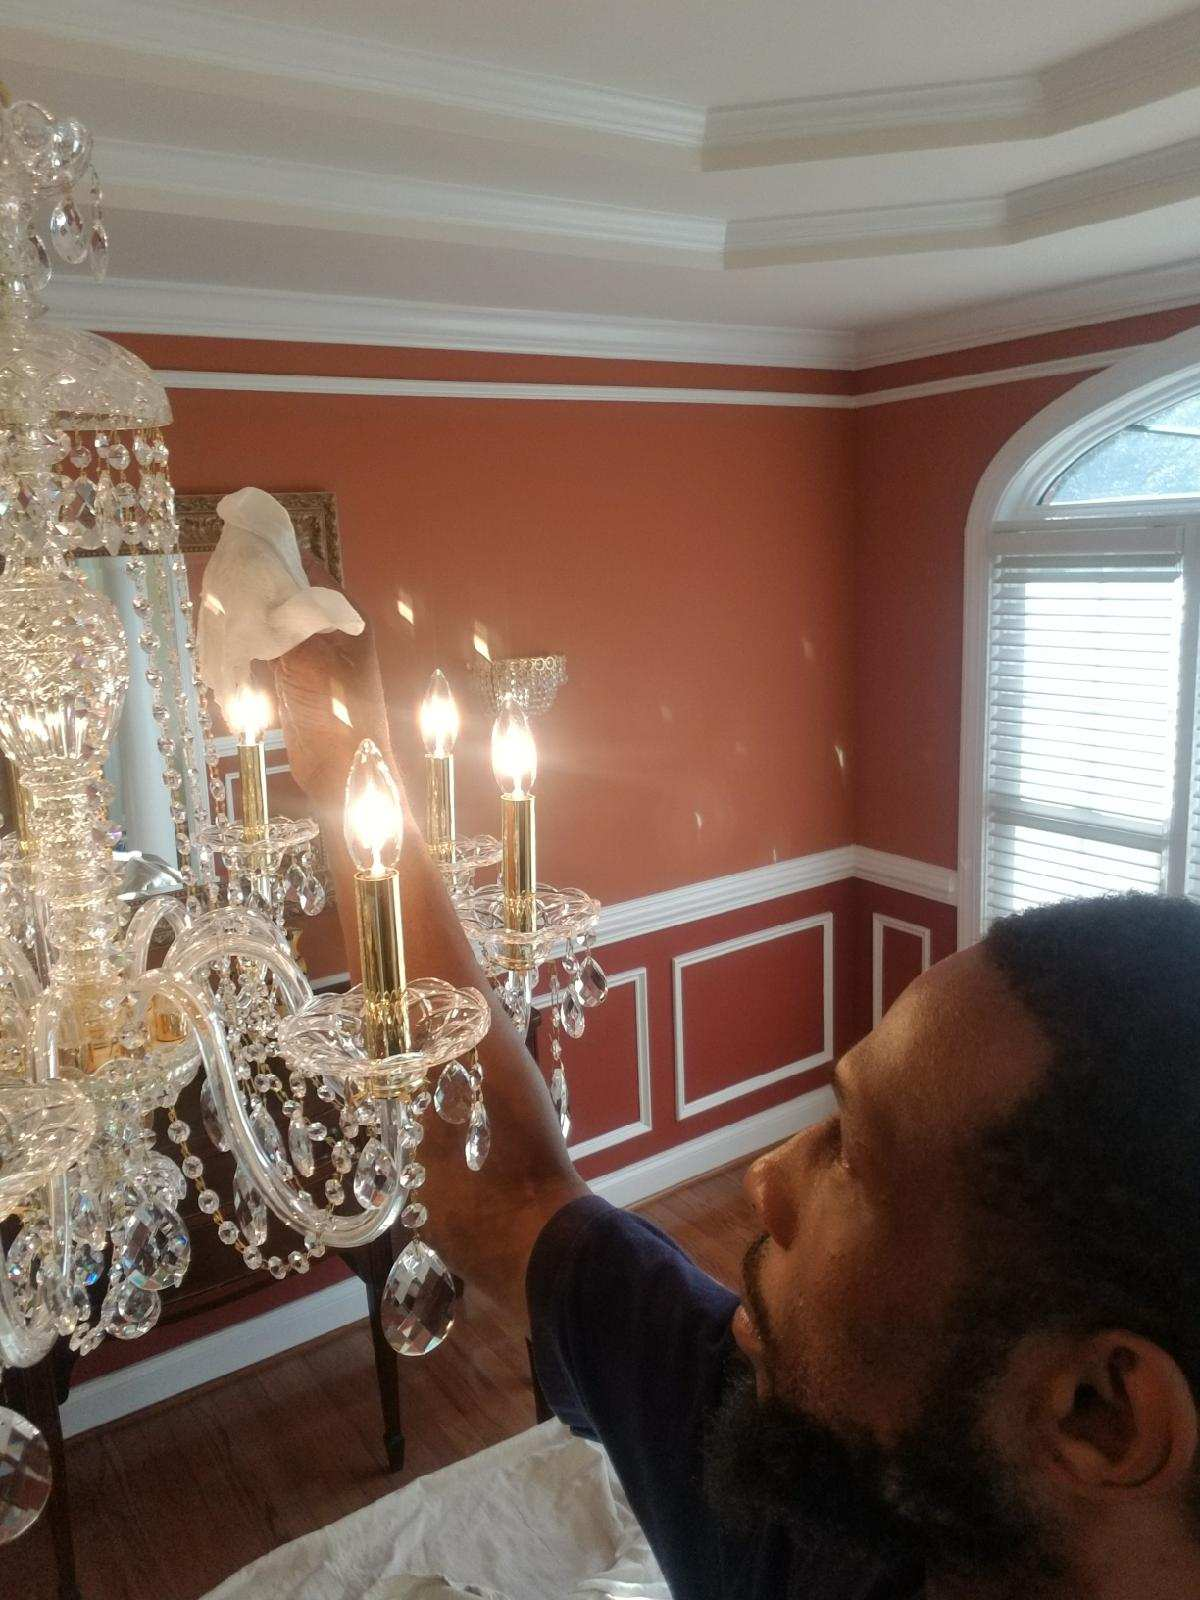 B chic interiors resource spotlight chandelier cleaning 2017 09 26 083944g mozeypictures Choice Image